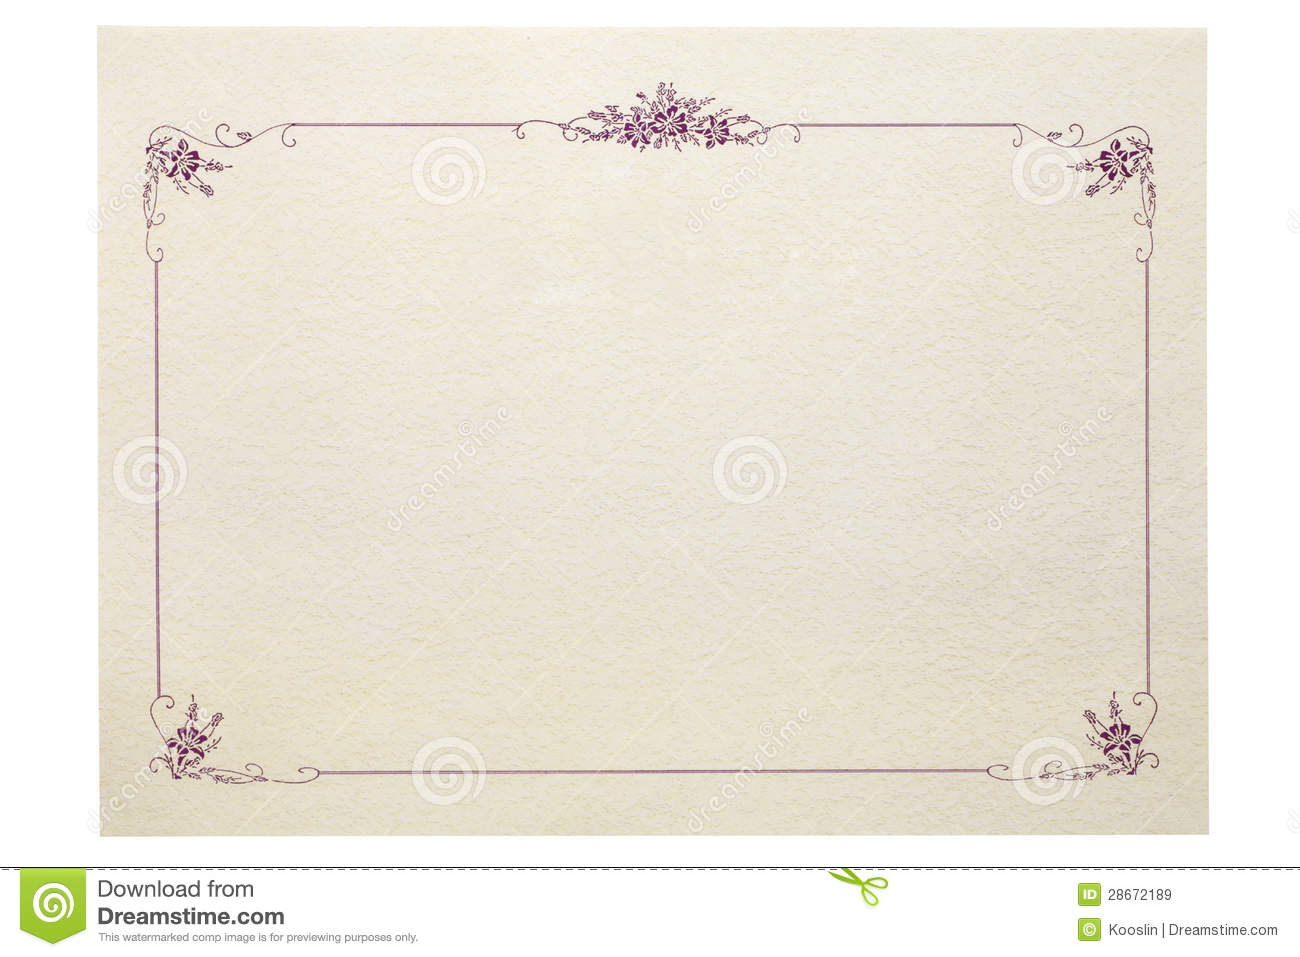 Certificate Background Royalty Free Stock Images - Image: 28672189